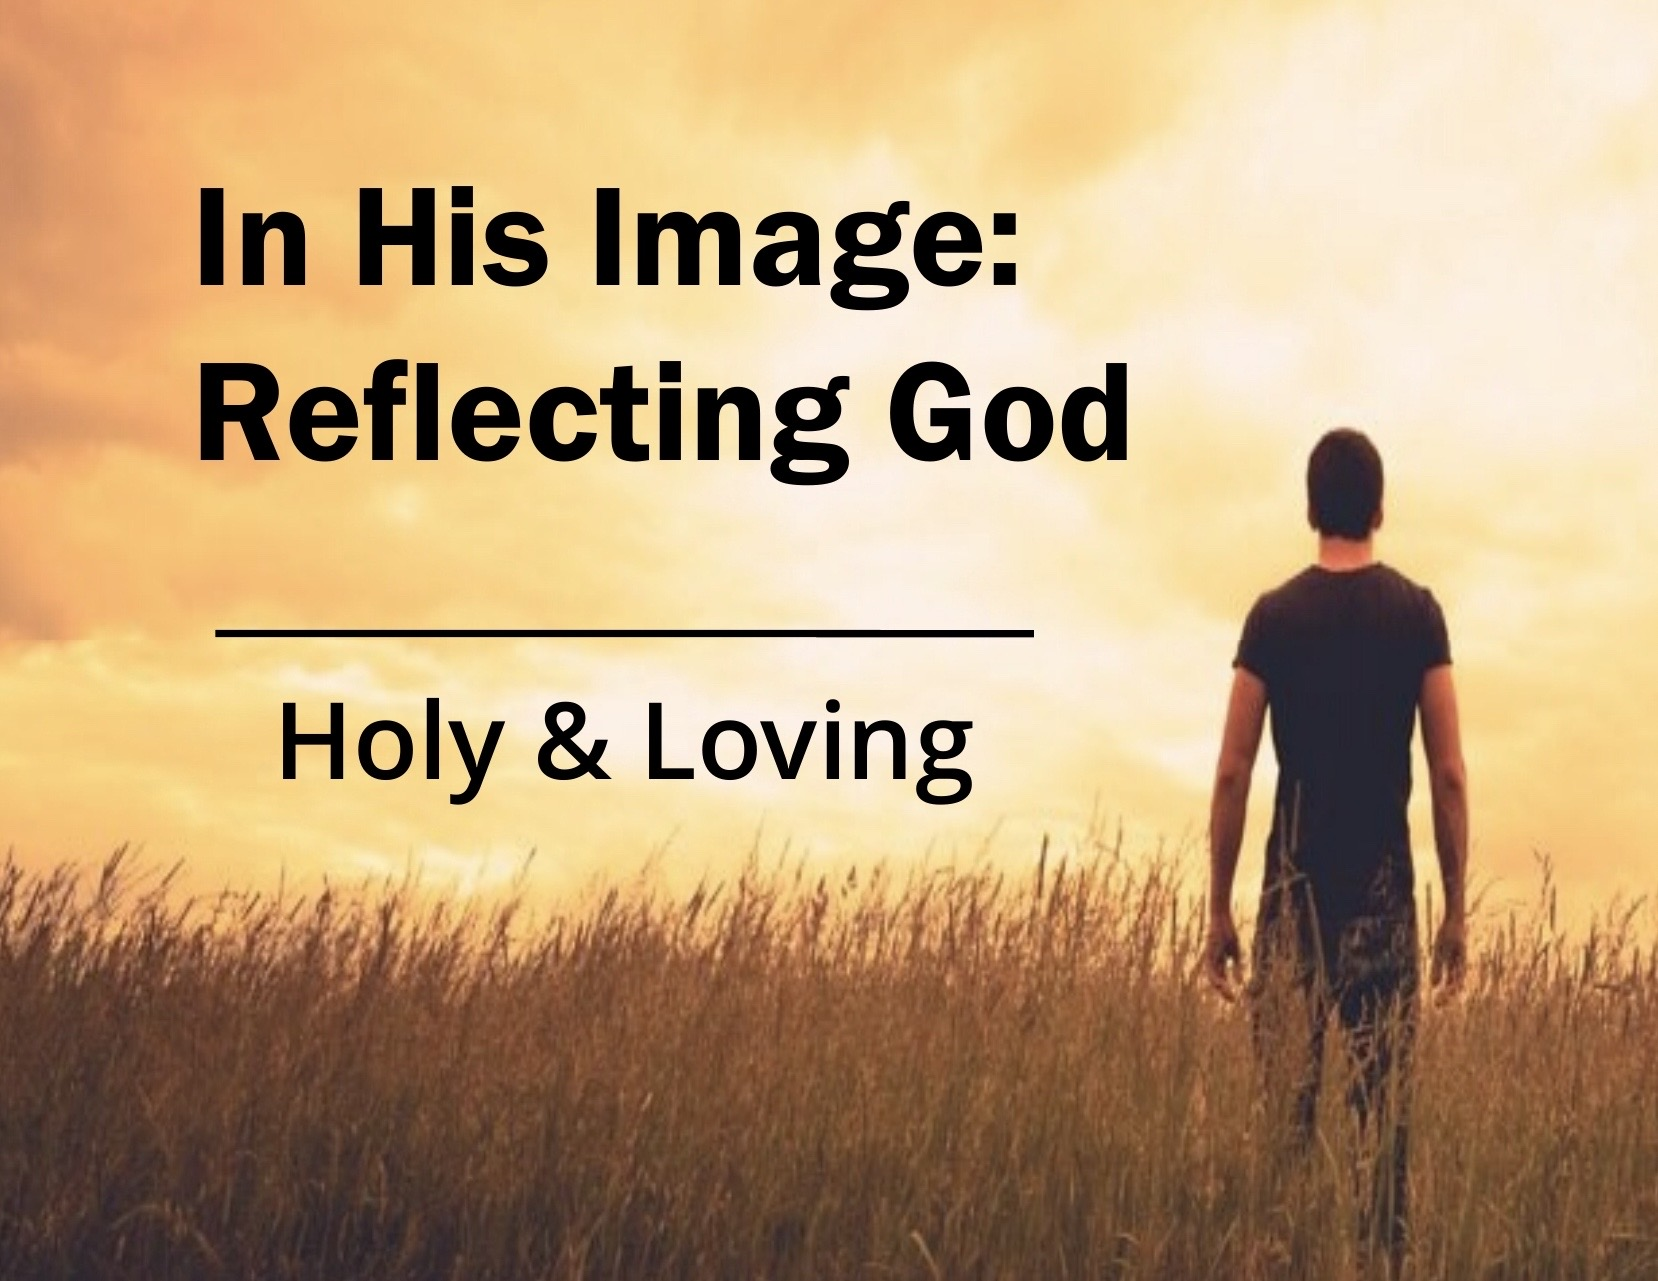 In His Image: Holy & Loving